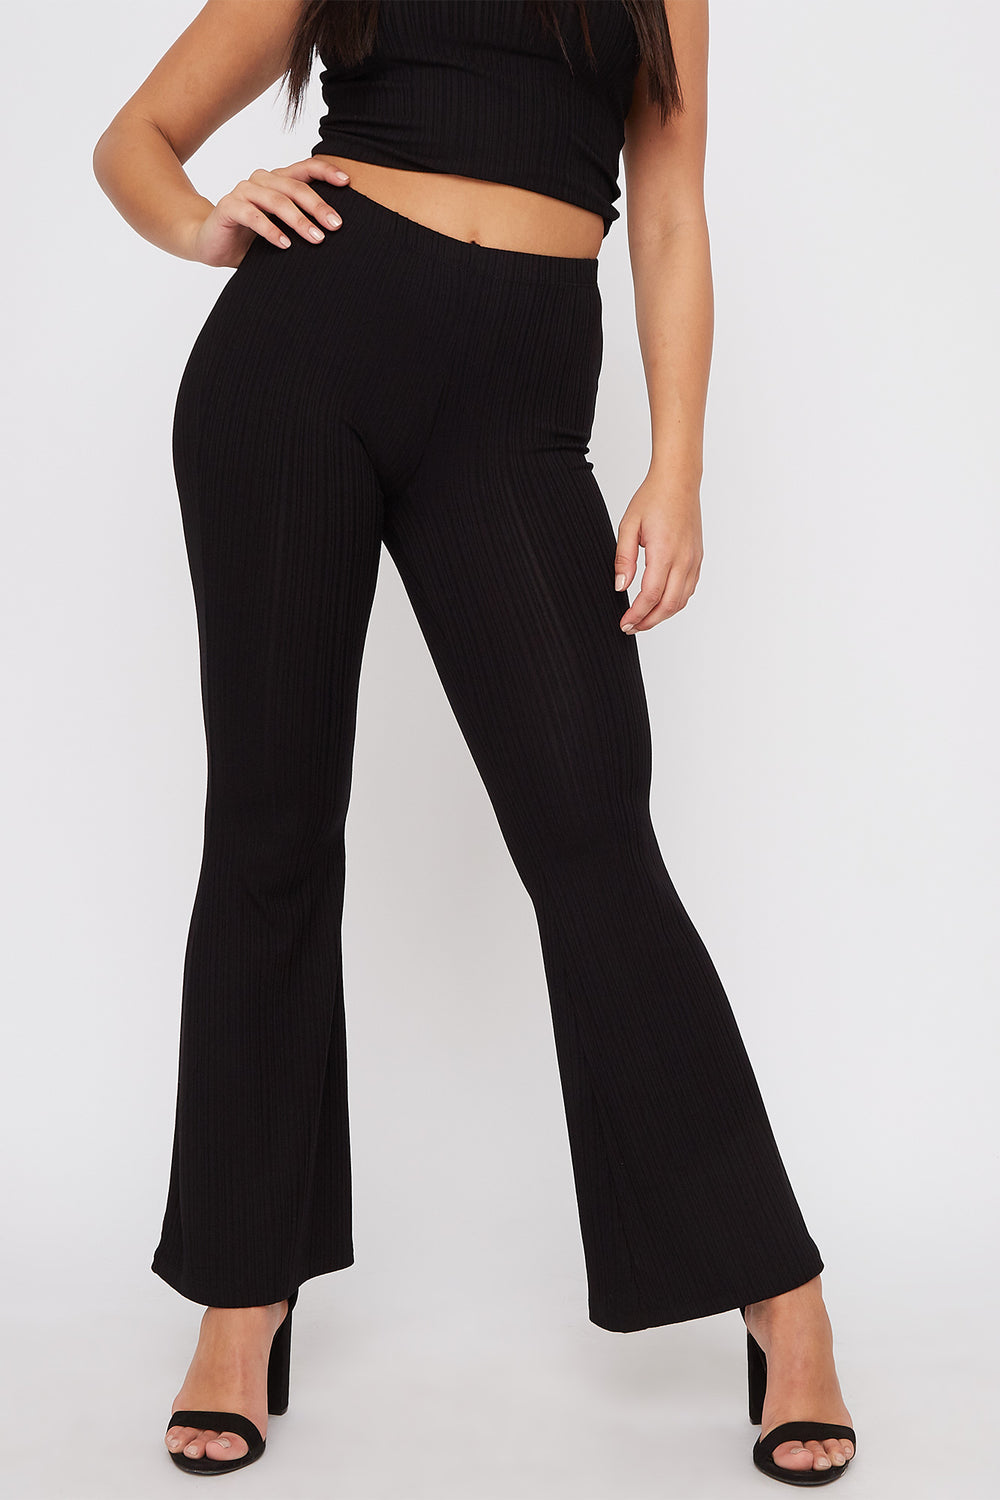 High-Rise Ribbed Flare Pant Black